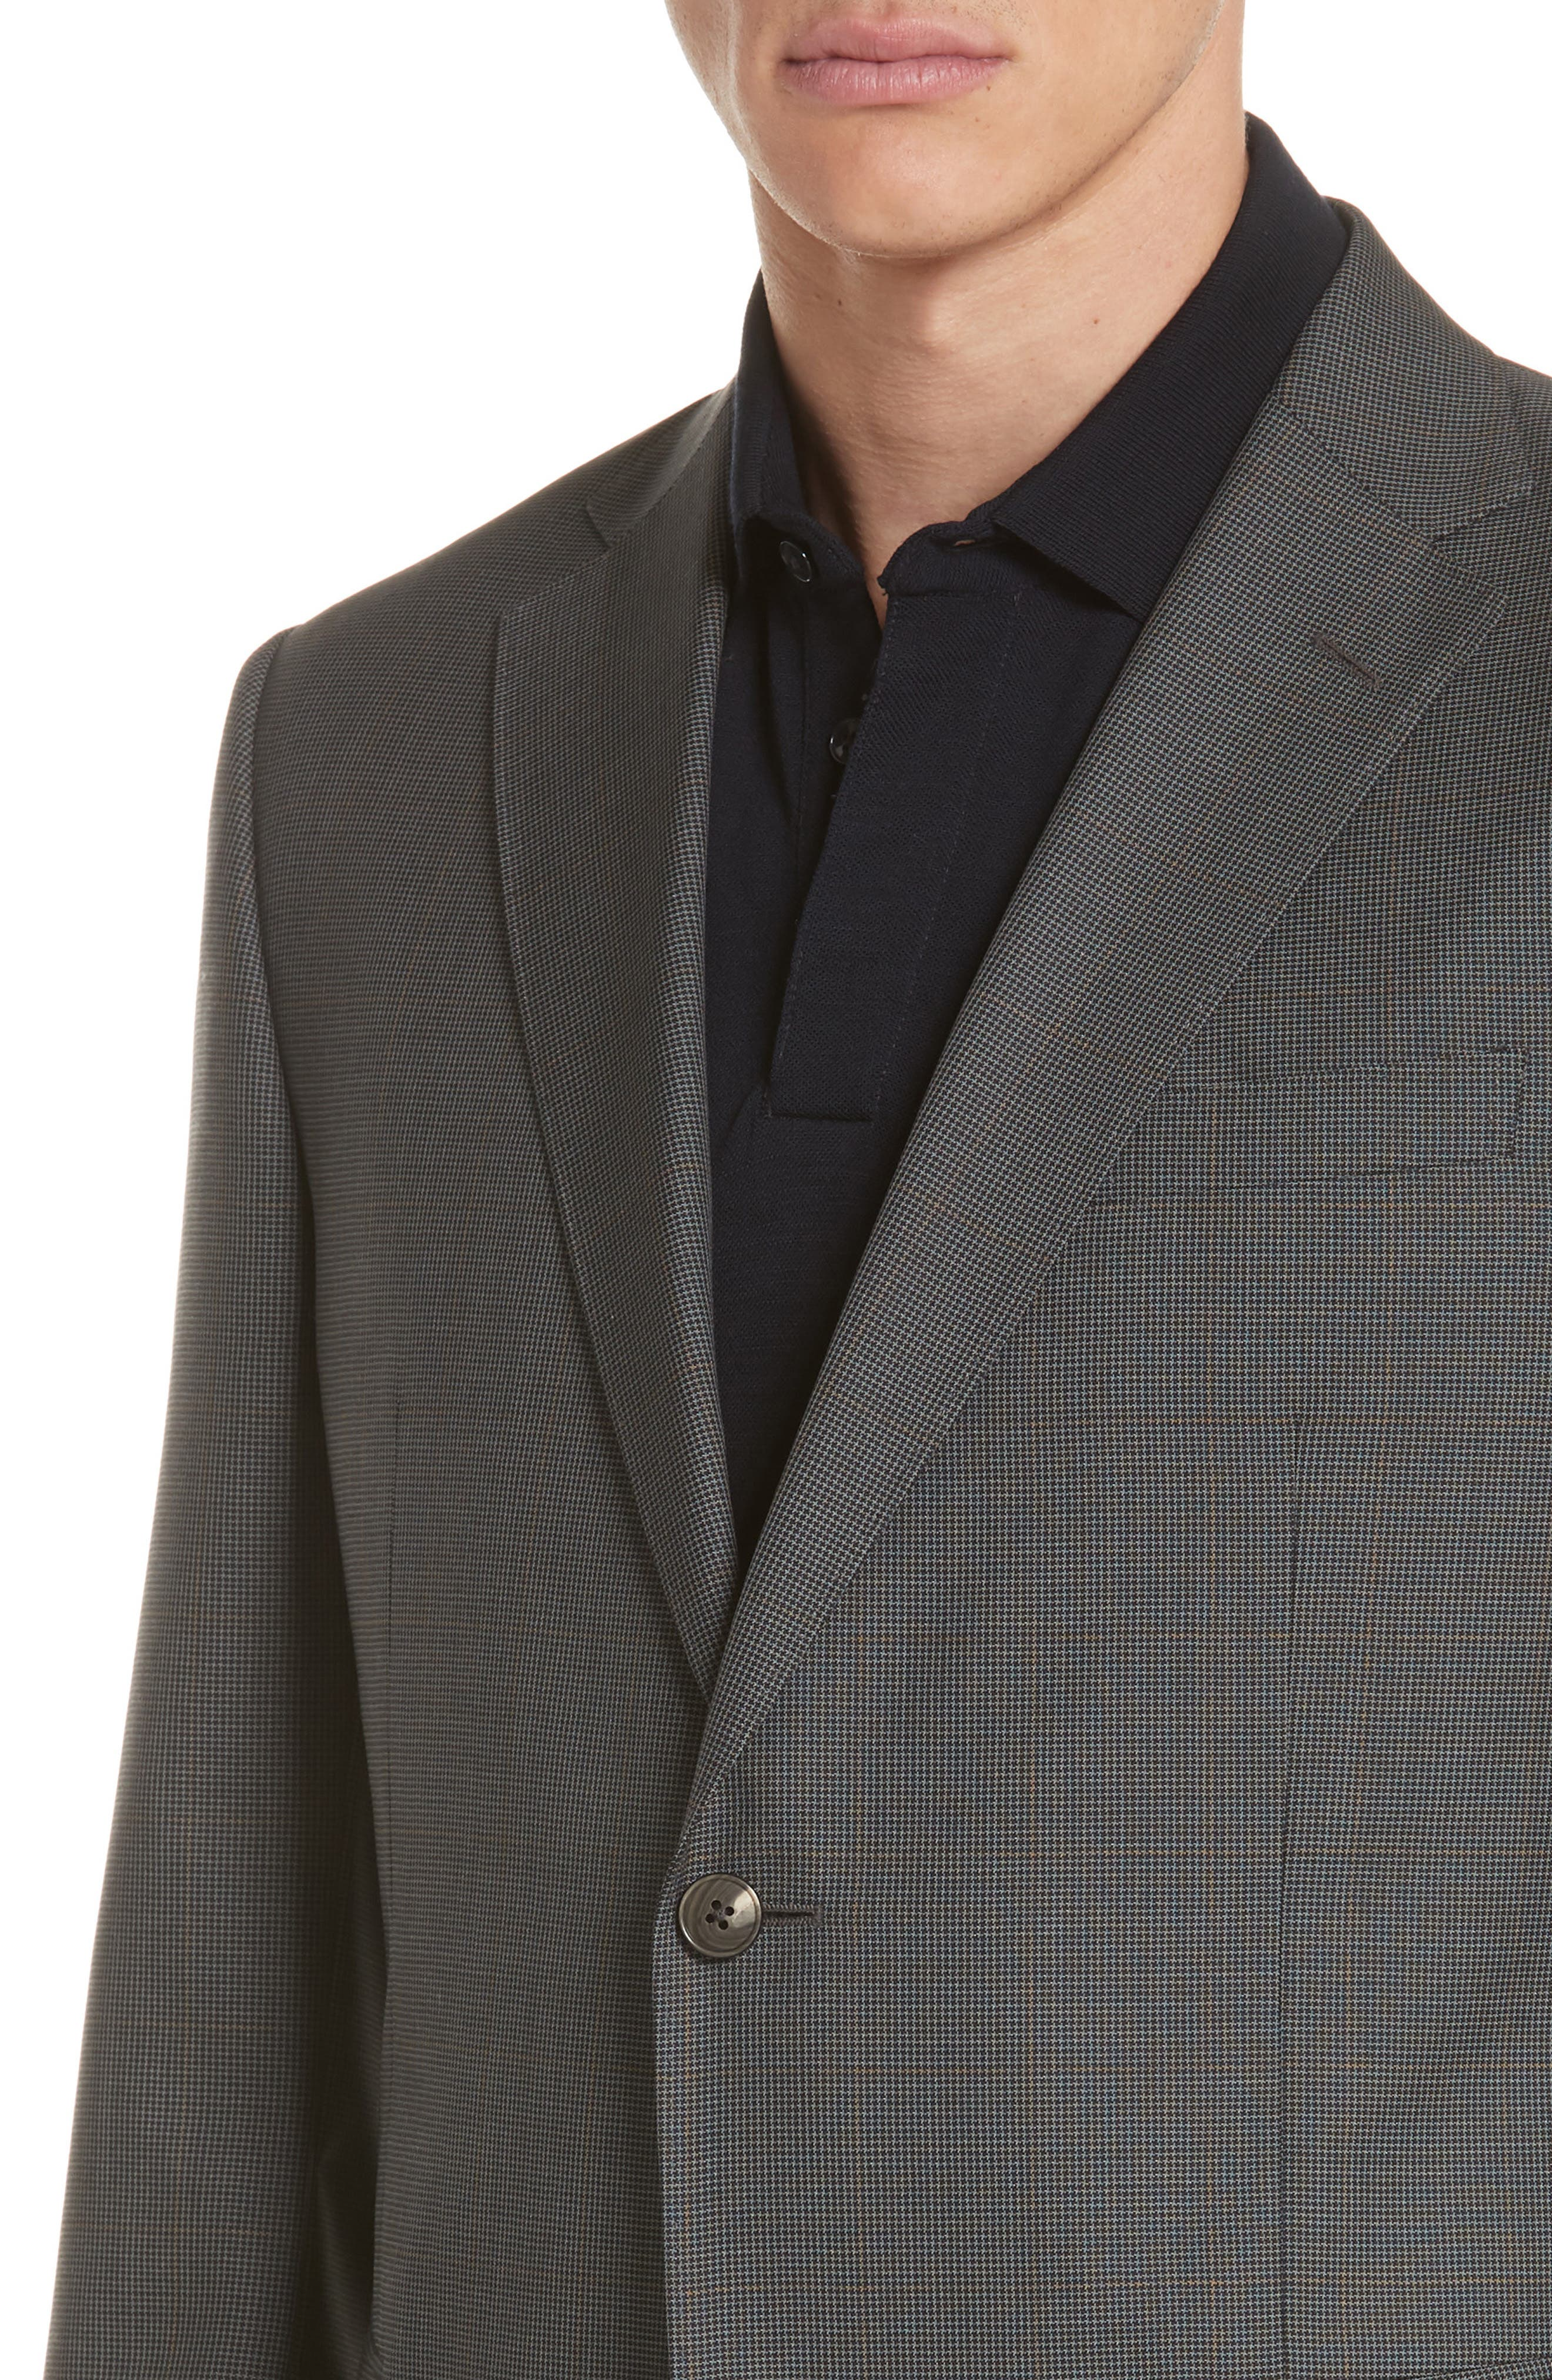 Trim Fit Houndstooth Wool & Silk Suit,                             Alternate thumbnail 4, color,                             026